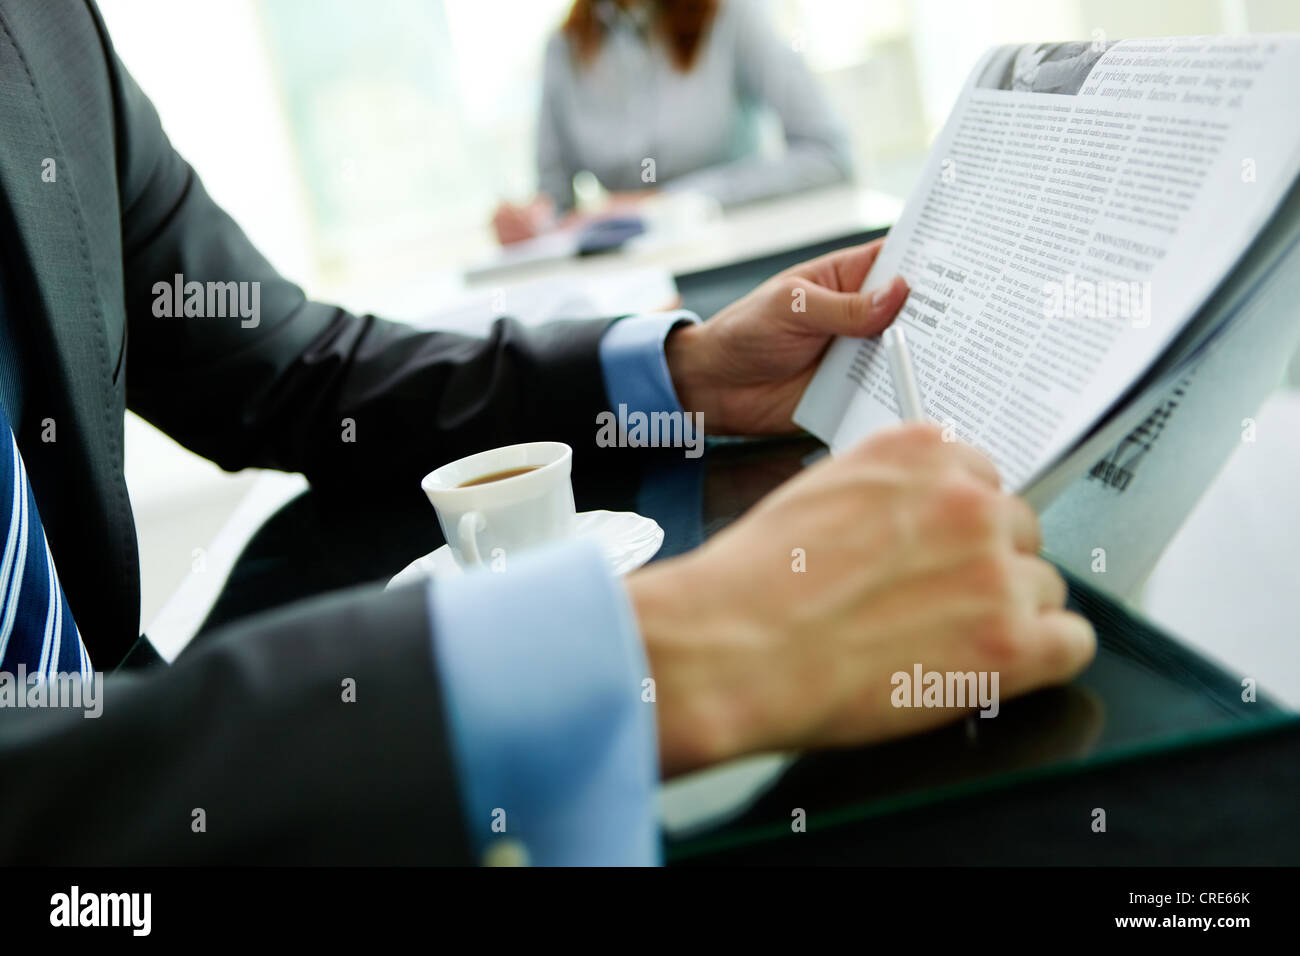 Close-up shot of a businessman reading the latest news - Stock Image